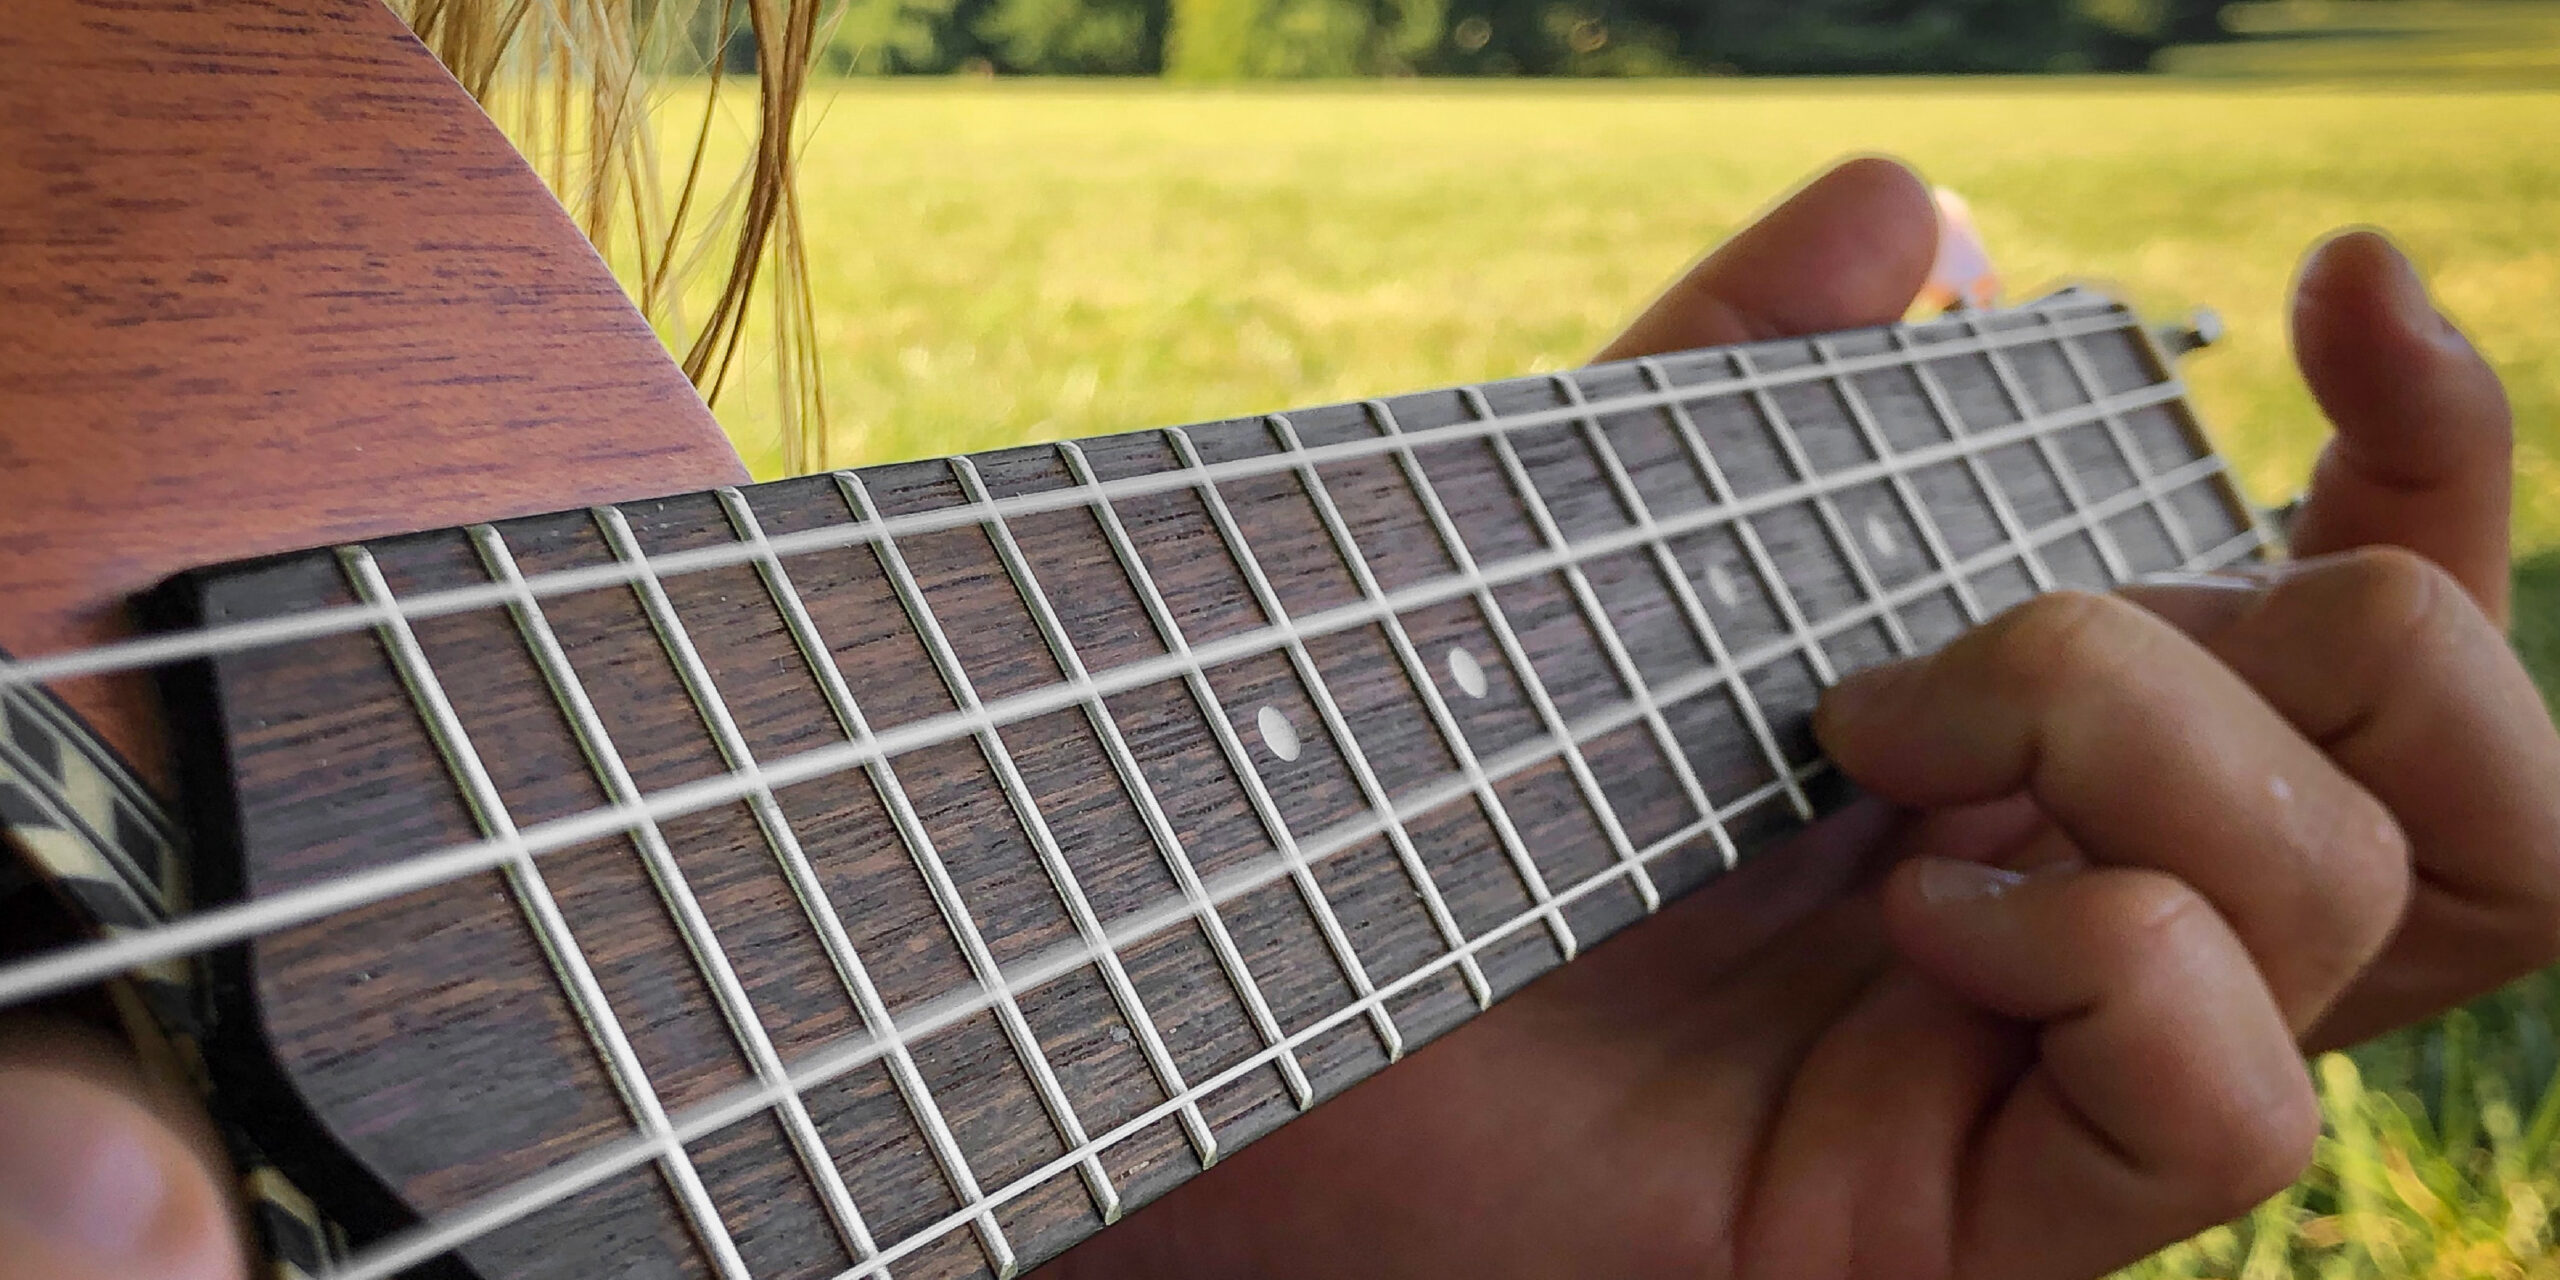 3 Chords Songs: A Step Closer To Mastering The Ukulele